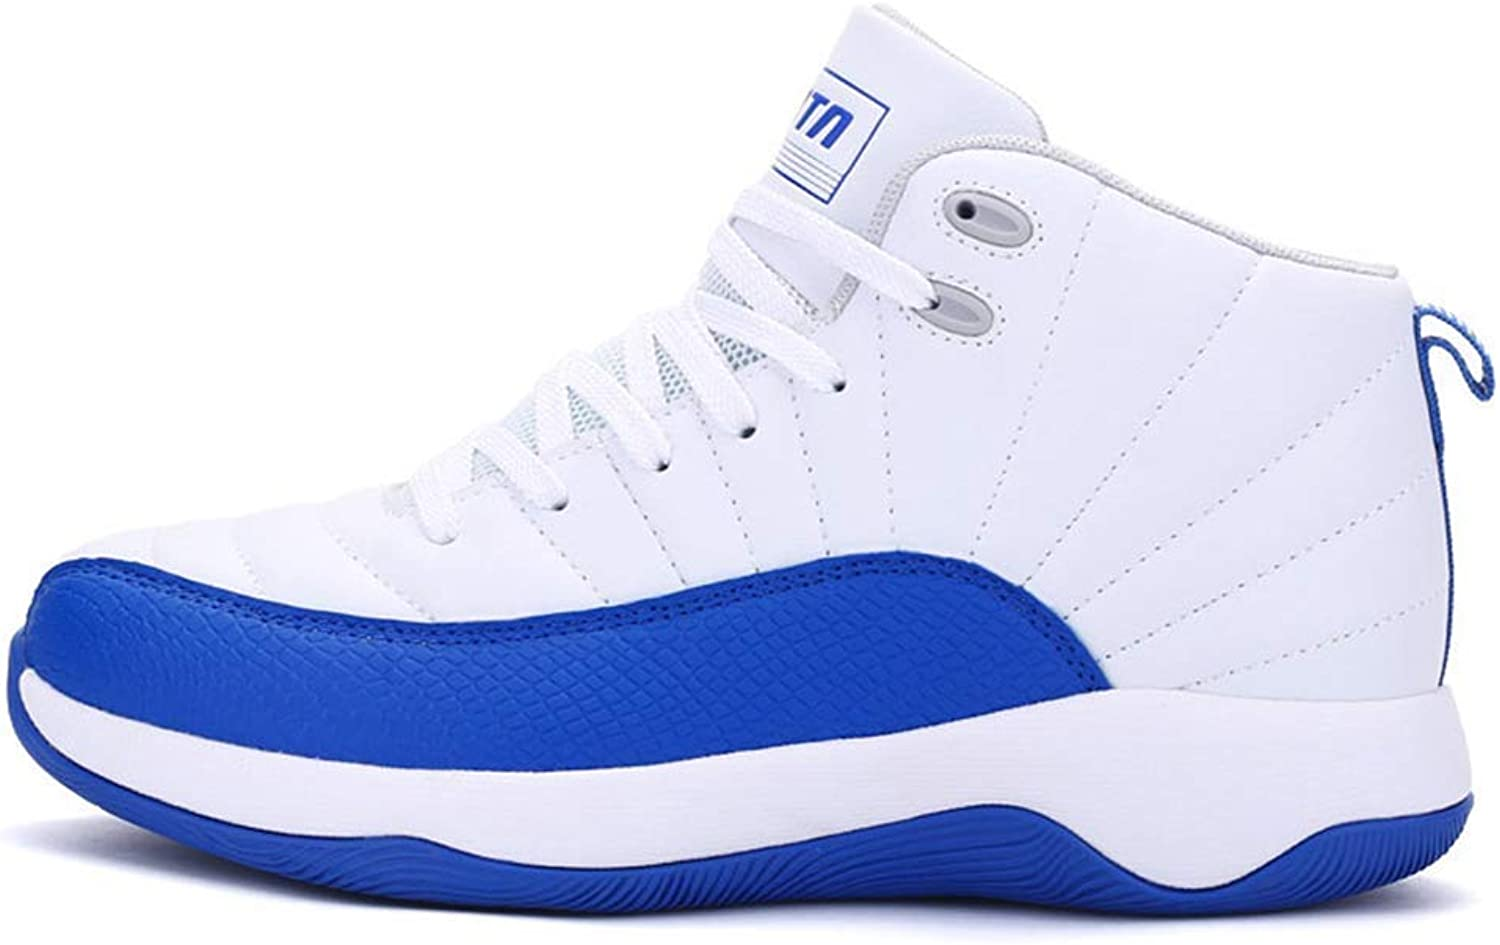 ZHRUI Men Sneakers Basketball shoes Anti-Slip Outdoor High-Top bluee Trainers Lace-up Running shoes (color   White bluee, Size   8.5=42 EU)